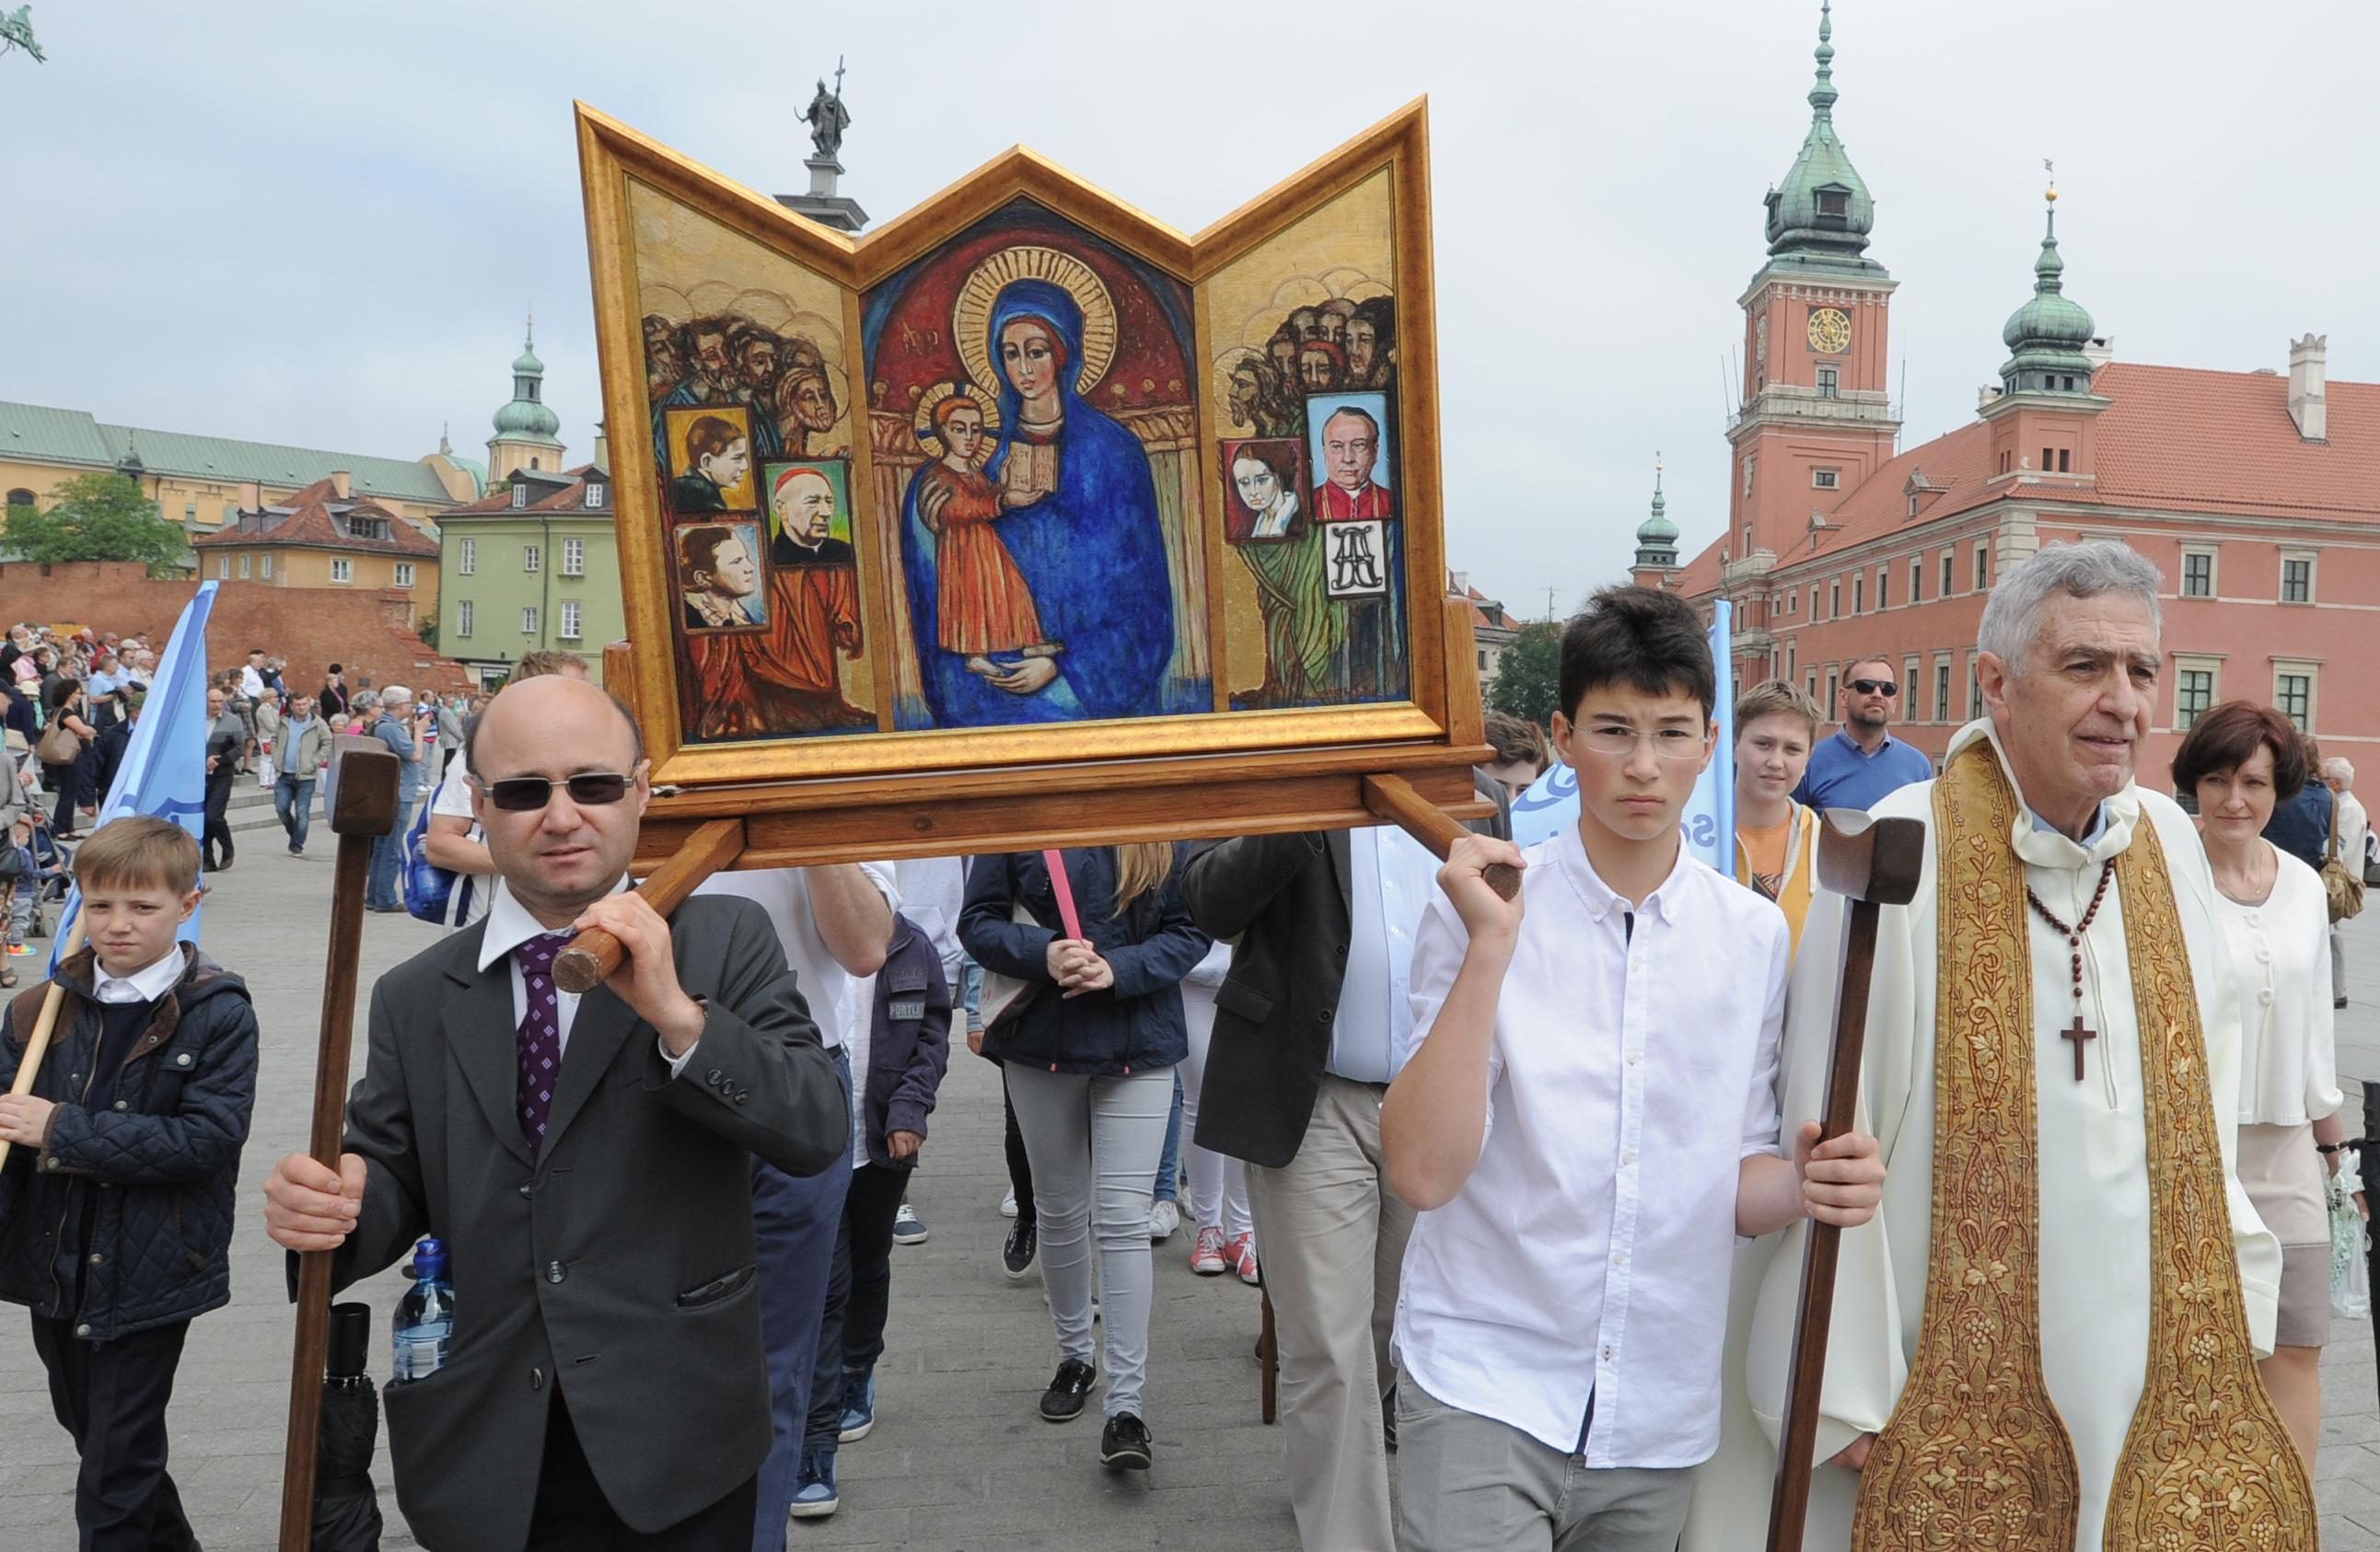 Polish Church leader appeals for end to political conflict